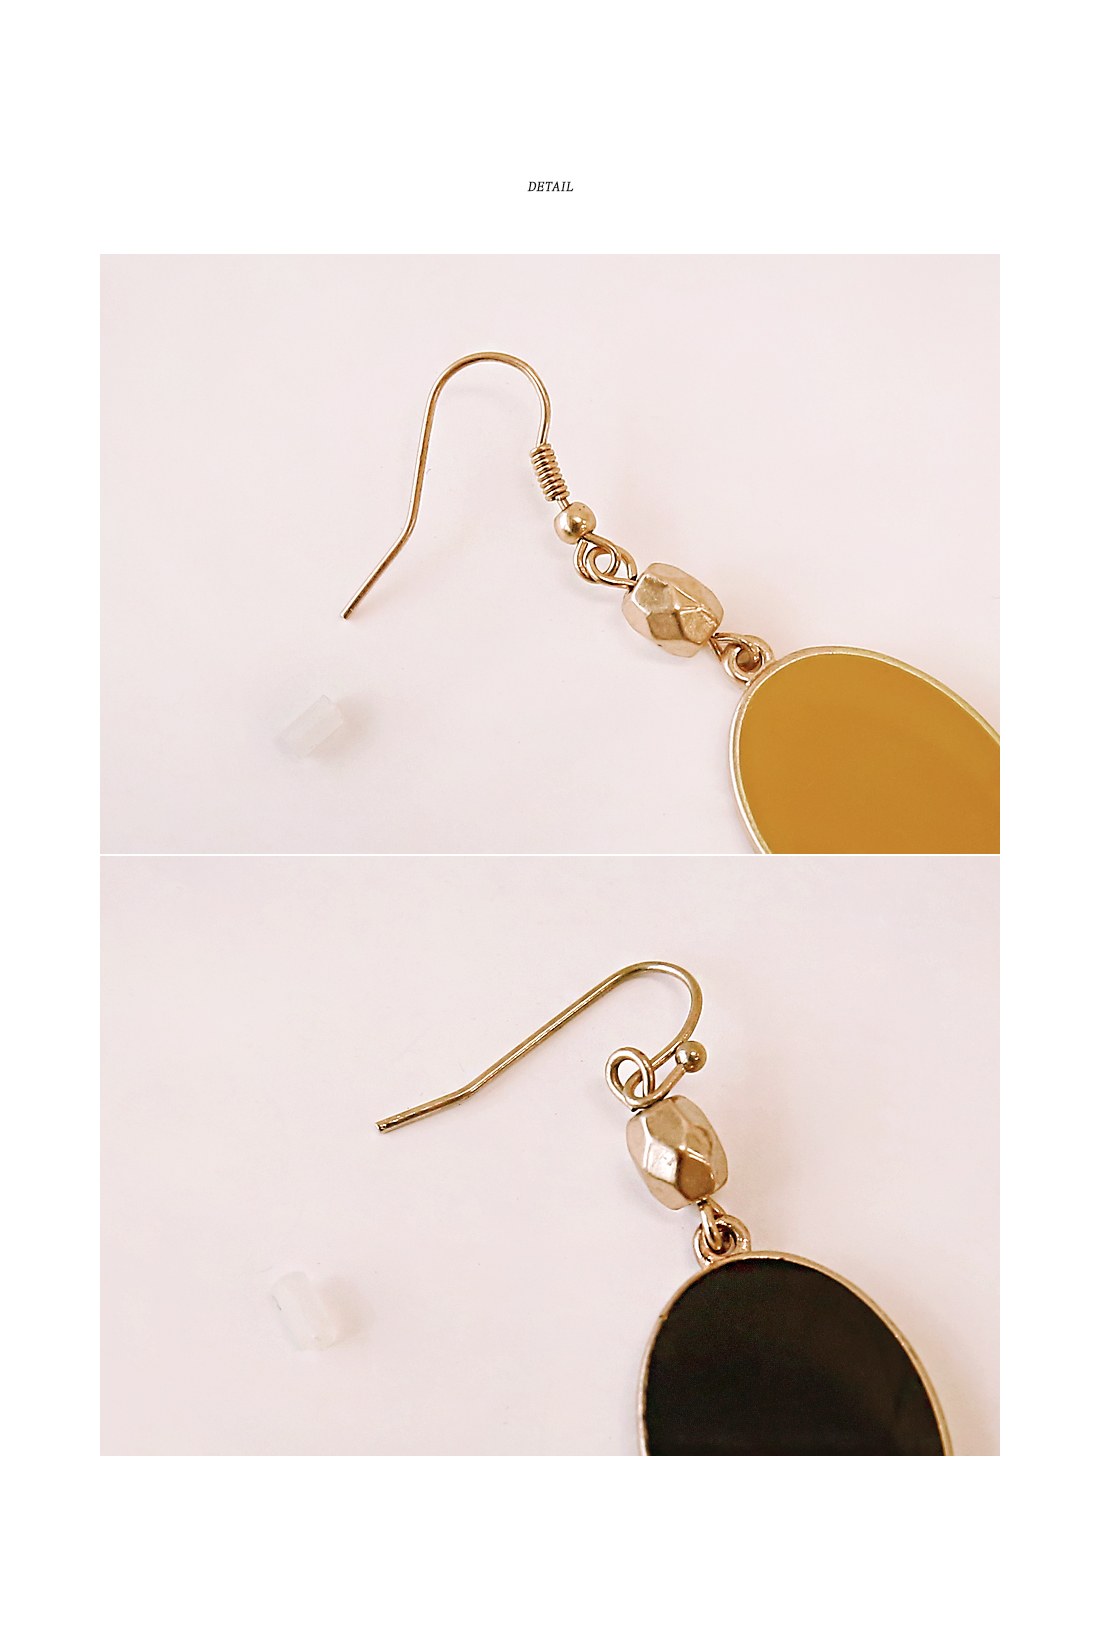 VINTAGE CIRCLE DROP EARRING